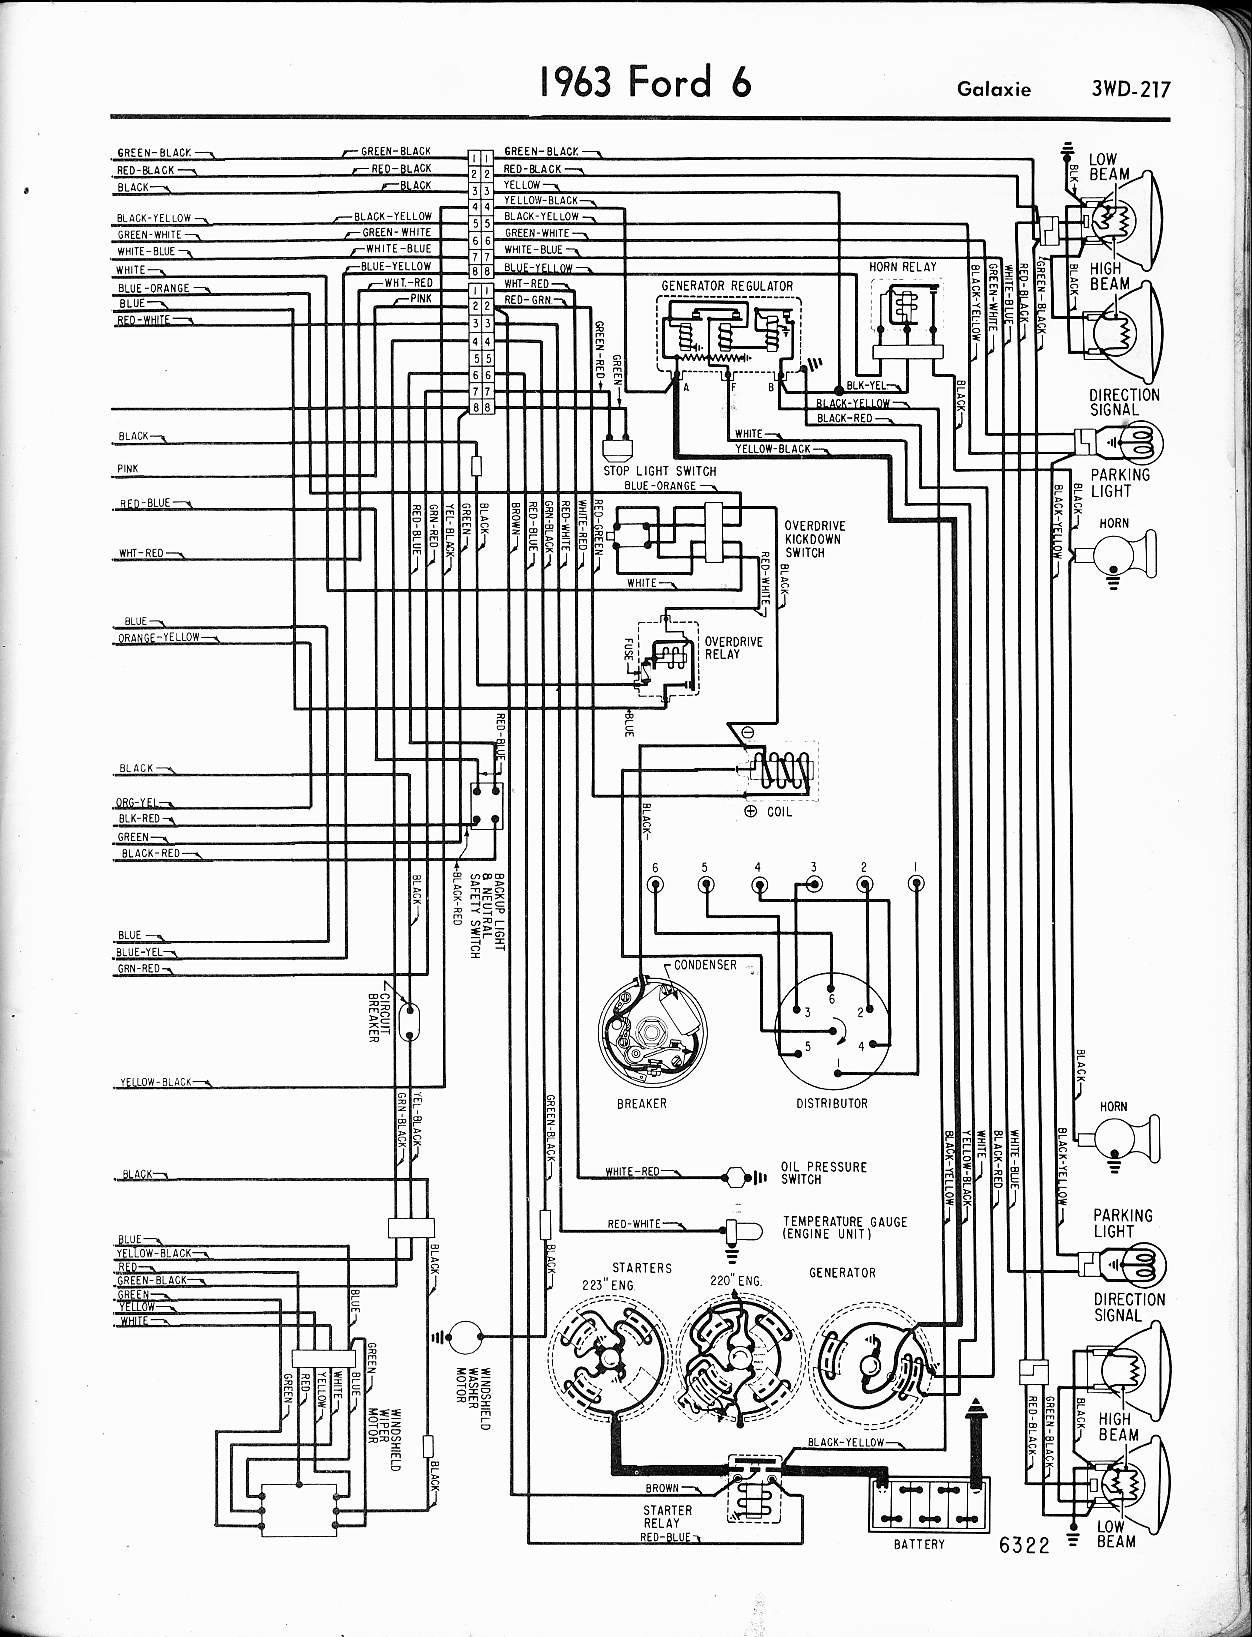 Wiring Schematic For Shibaura Sd22 Tractor,Schematic